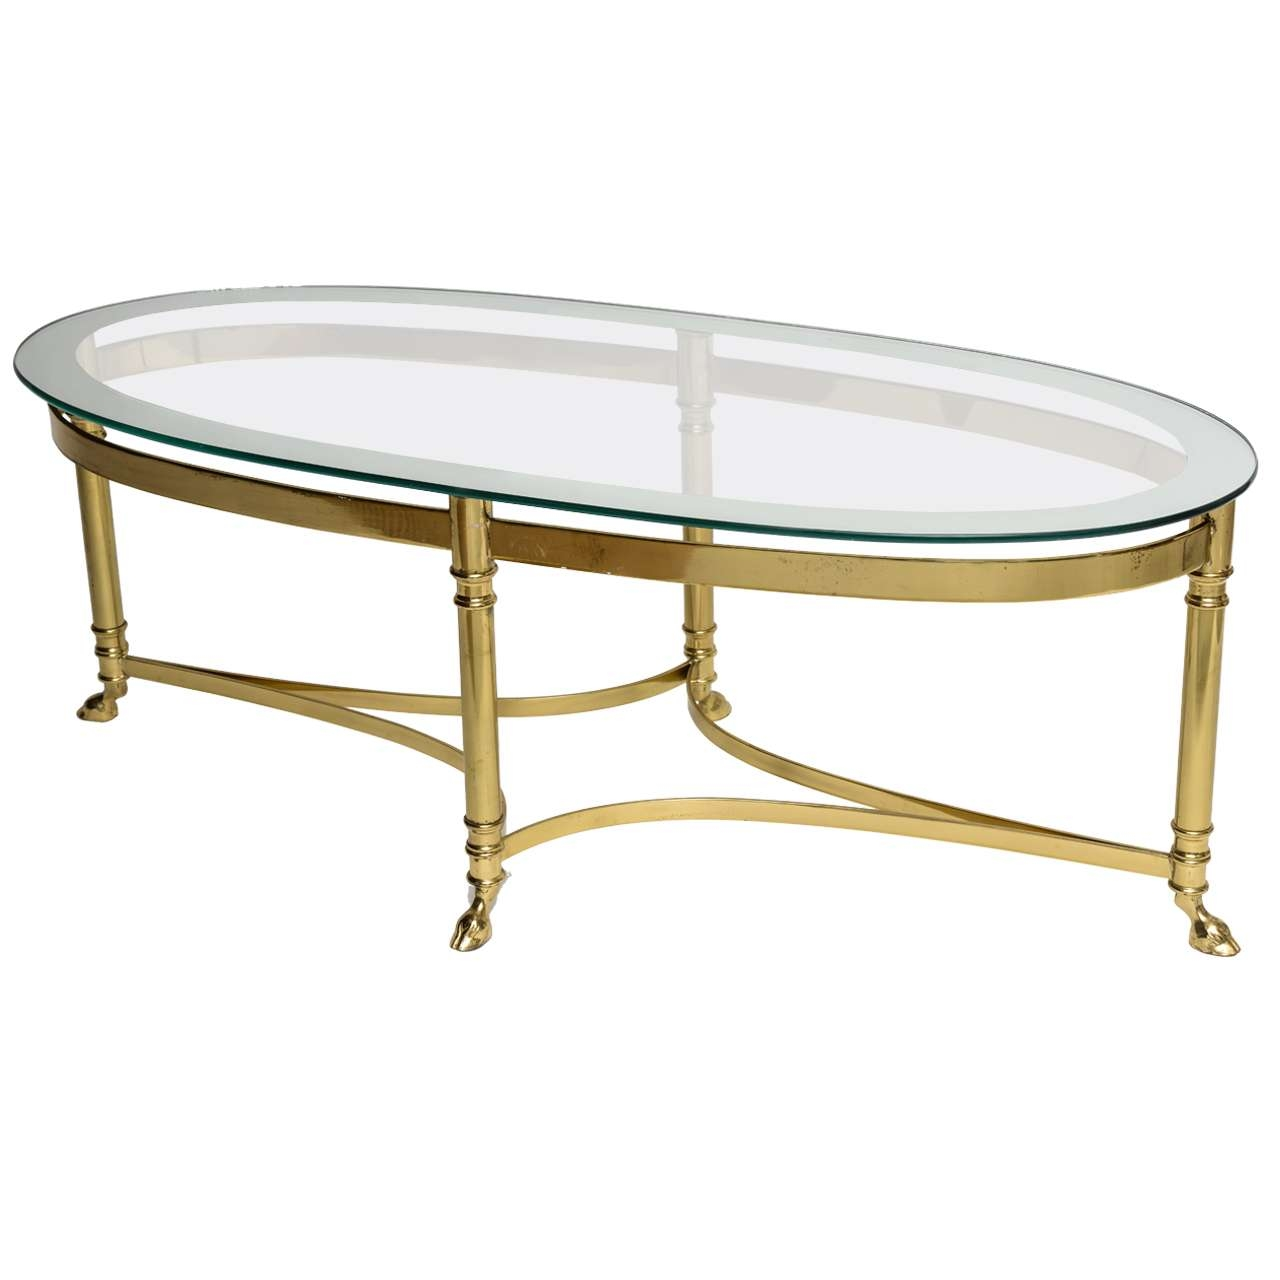 2017 Retro Glass Coffee Tables With Regard To Coffee Tables Ideas: Stunning Glass Oval Coffee Table Living Room (View 2 of 20)